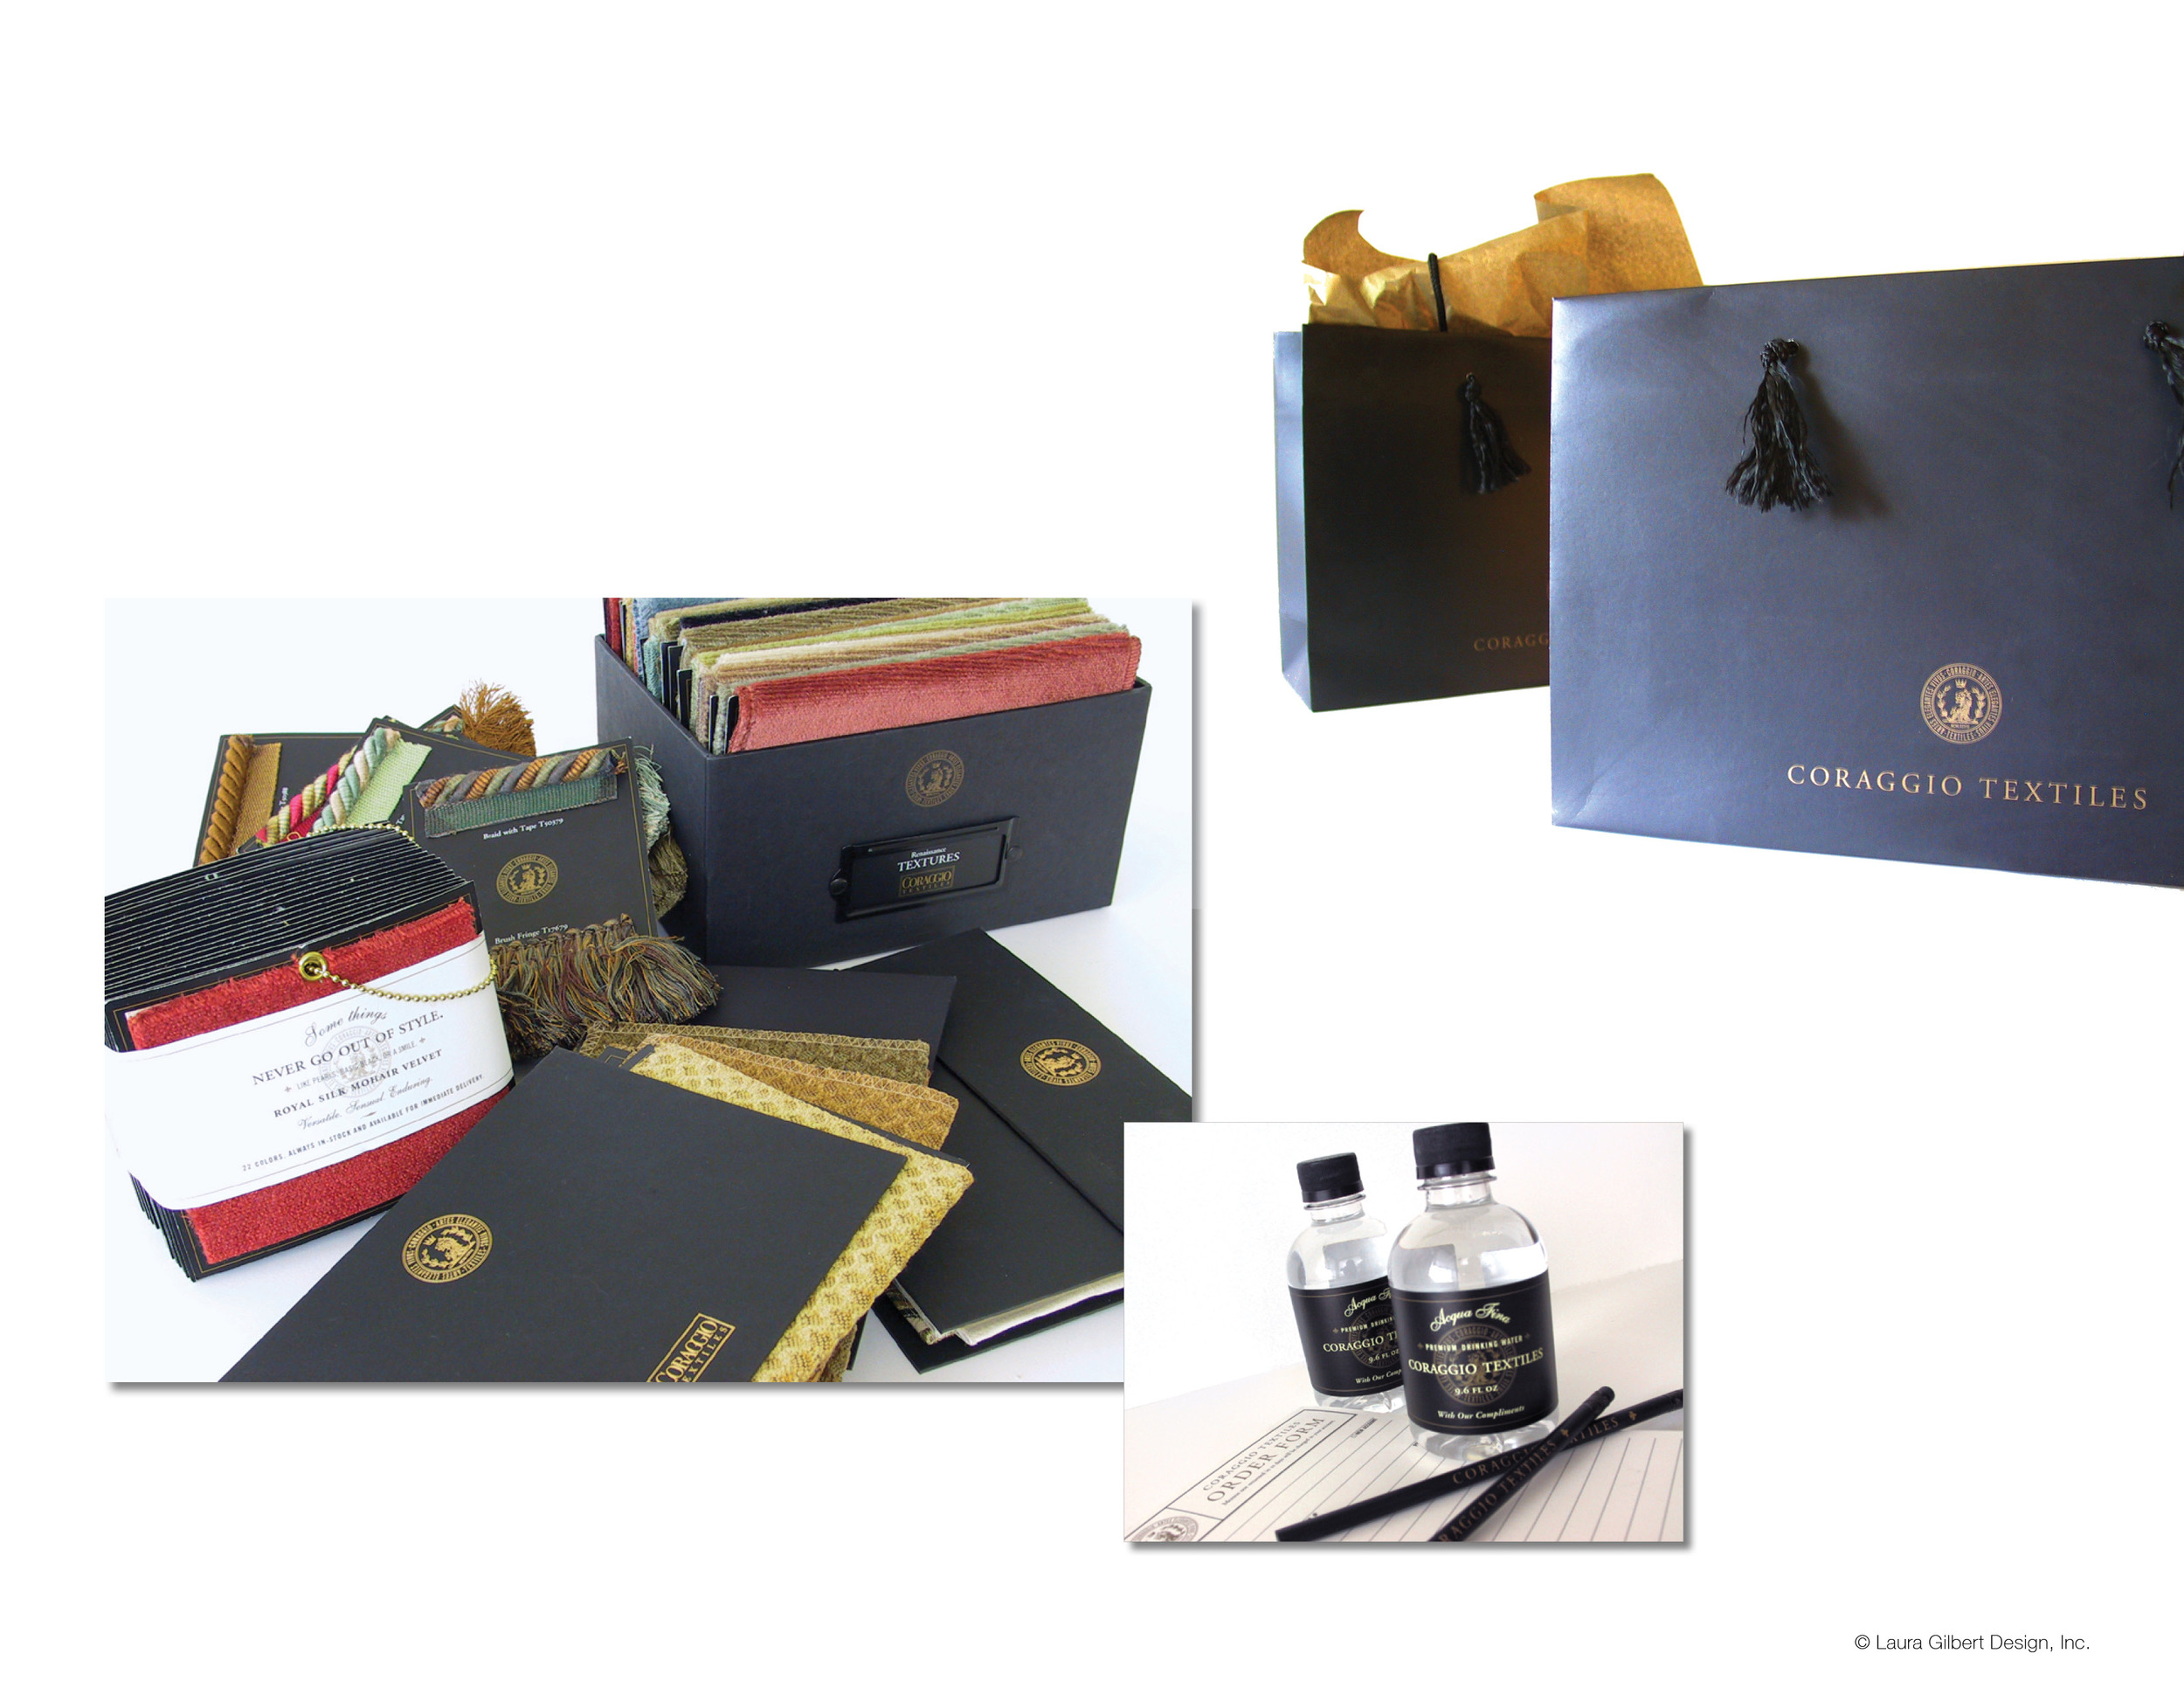 Shopping bags, product sampling materials, and showroom collateral